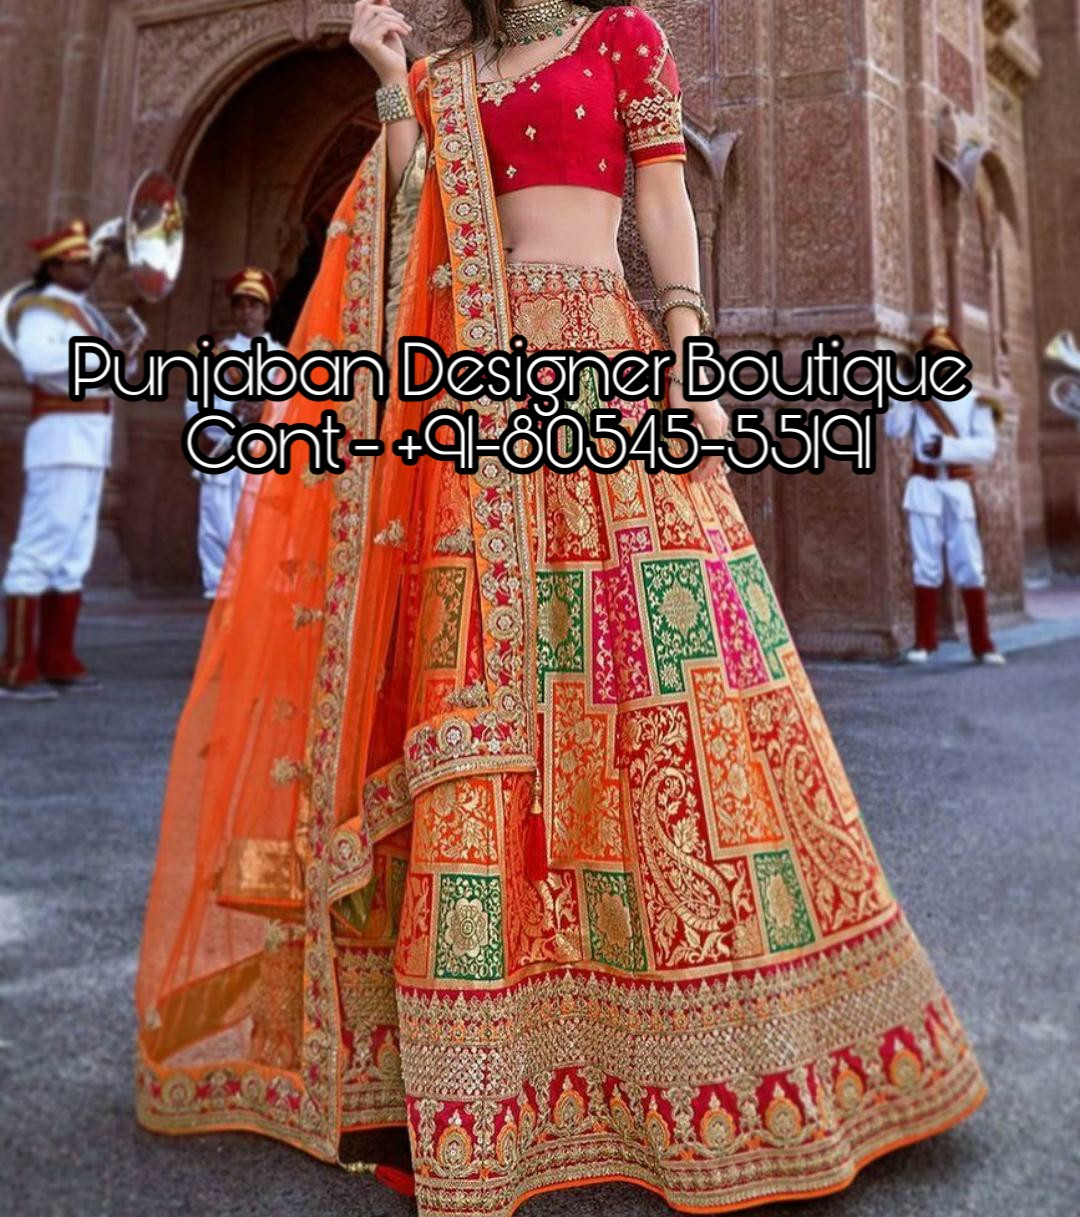 New Lehenga Blouse Designs 2019 Punjaban Designer Boutique,Small Space Design Ideas For Small Kitchens